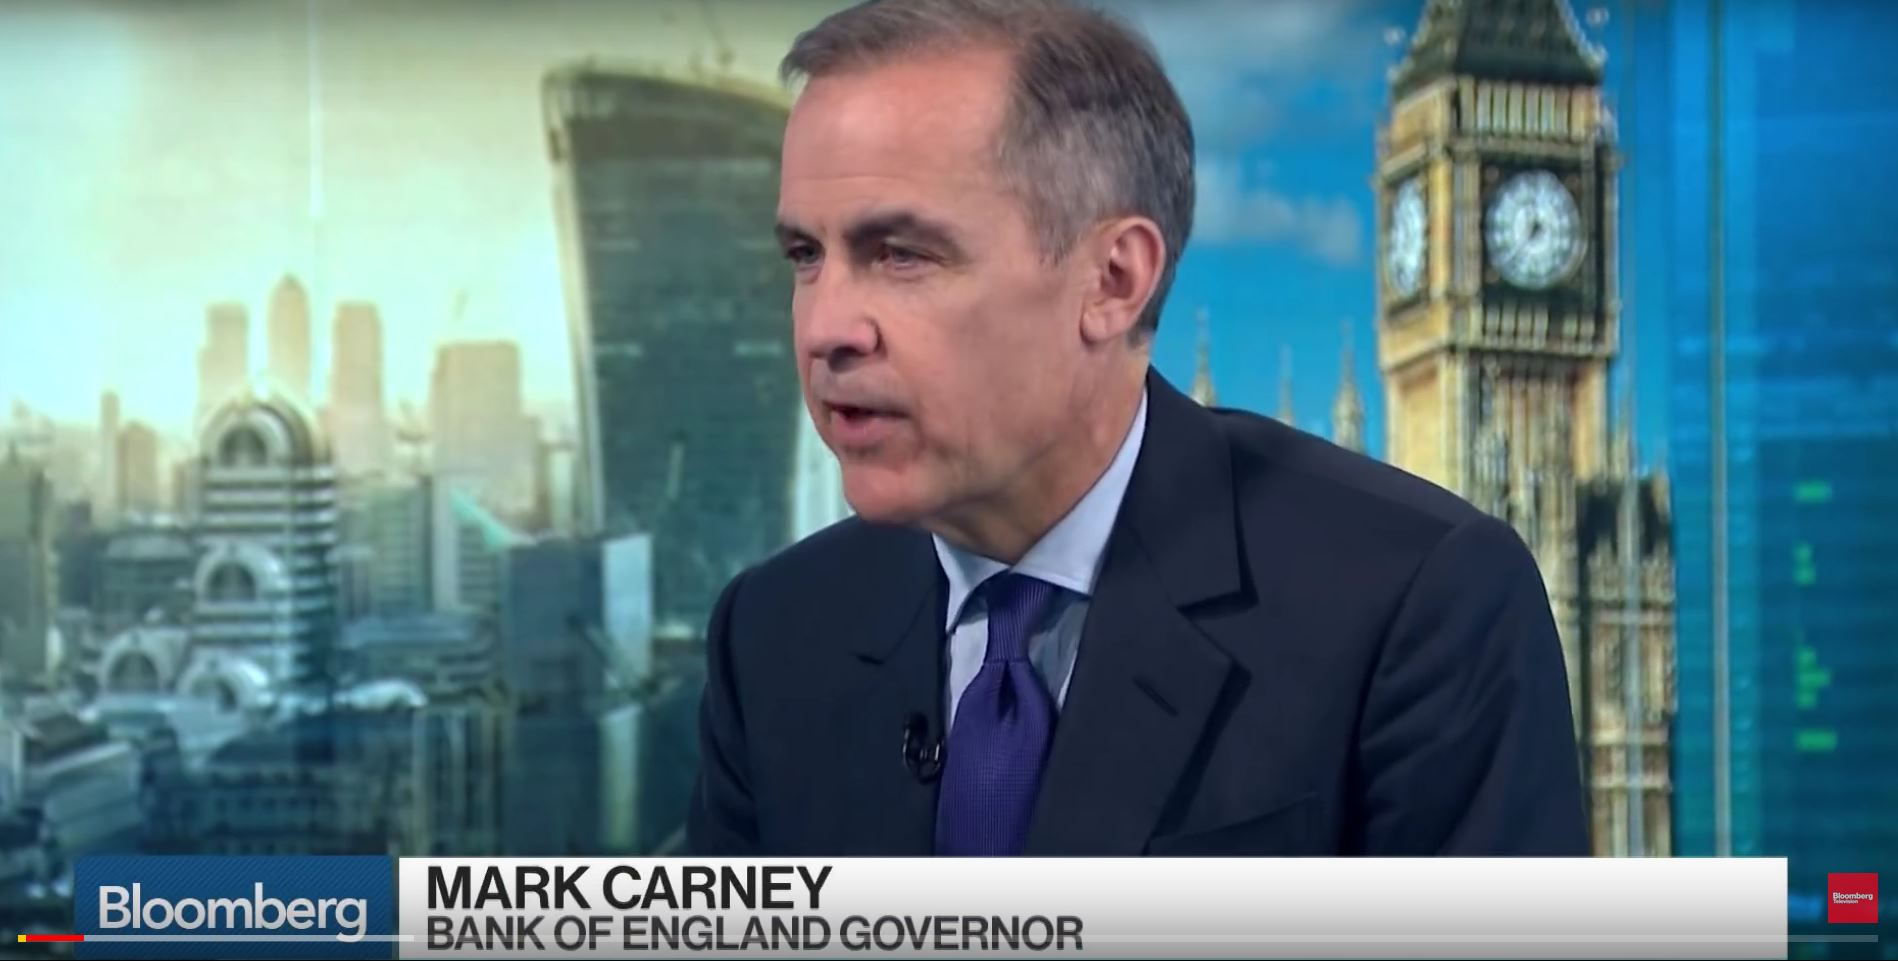 Bloomberg interviews Mark Carney from Bank of England